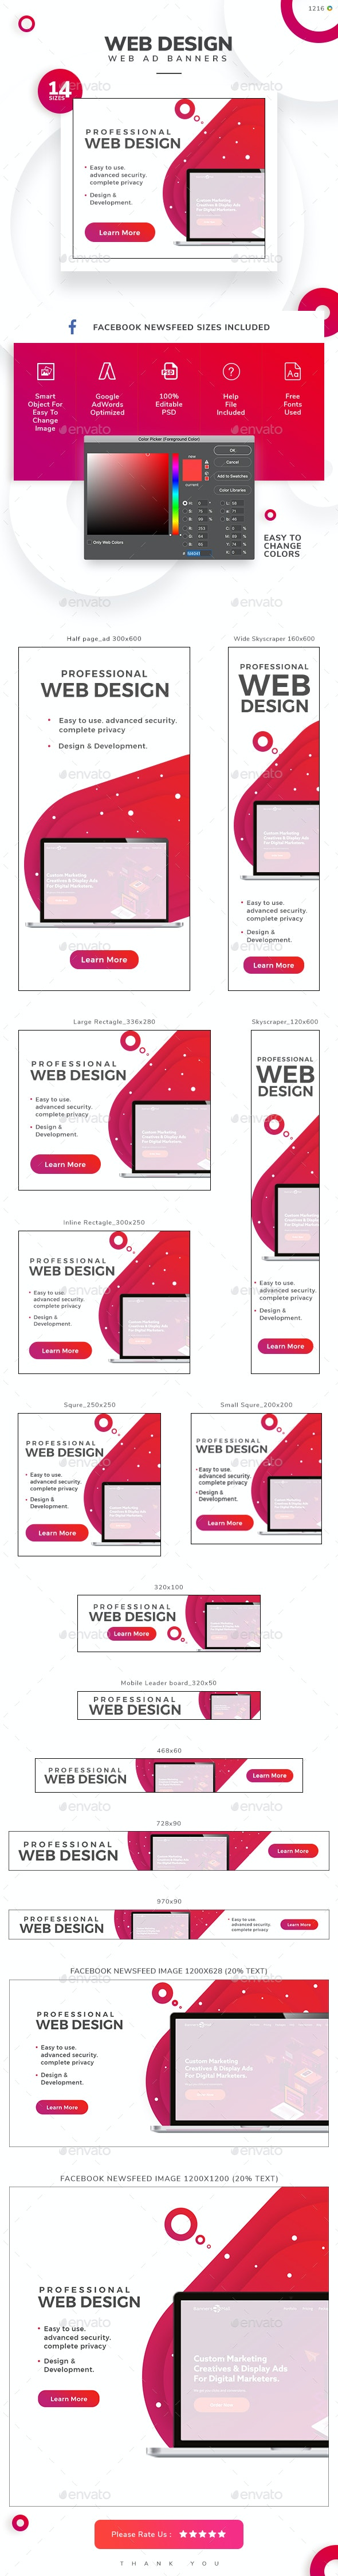 Web Design Banner Set - Banners & Ads Web Elements